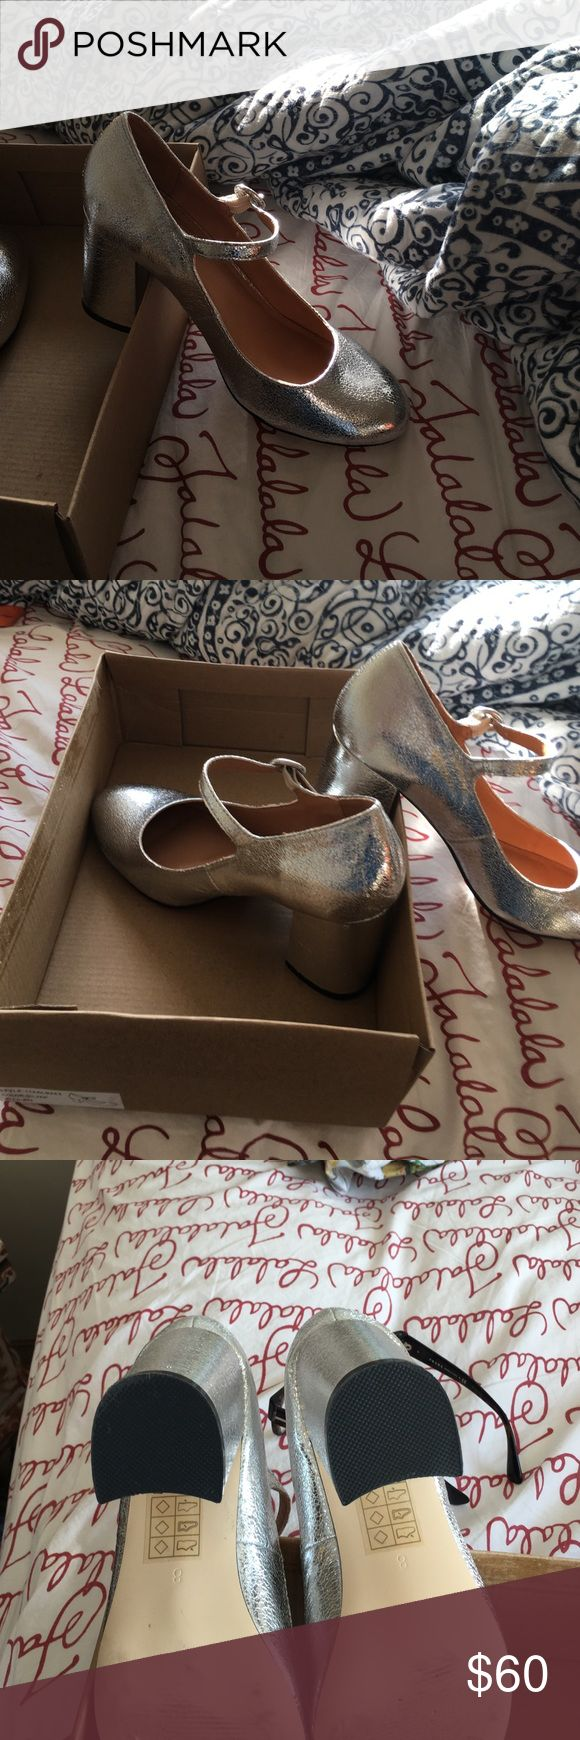 Glitter holographic heels From Urban Outfitters Ankle straps - sexy - worn once on a date Urban Outfitters Shoes Heels